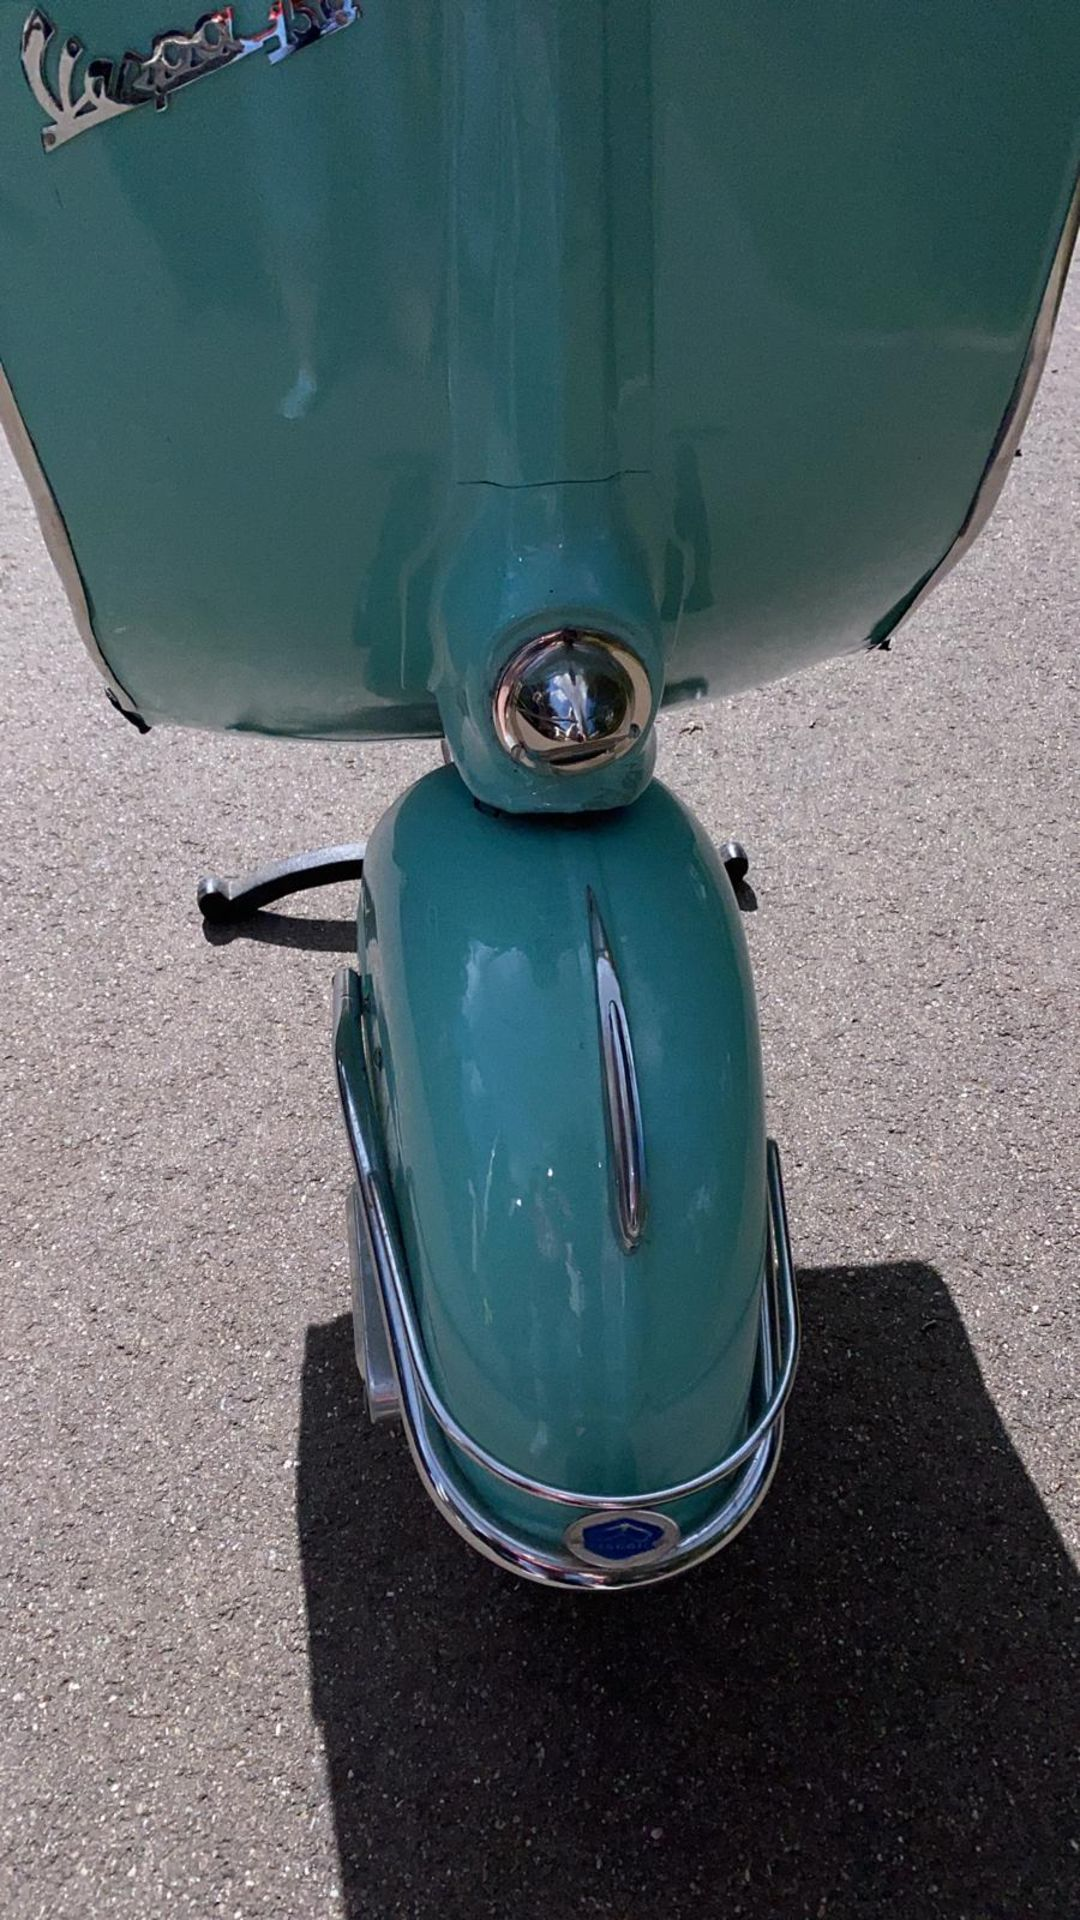 PIAGGIO VESPA 150 FRONT LIGHT ON A 3 PIN PLUG THROUGH THE HEADLIGHT *NO VAT* - Image 6 of 8